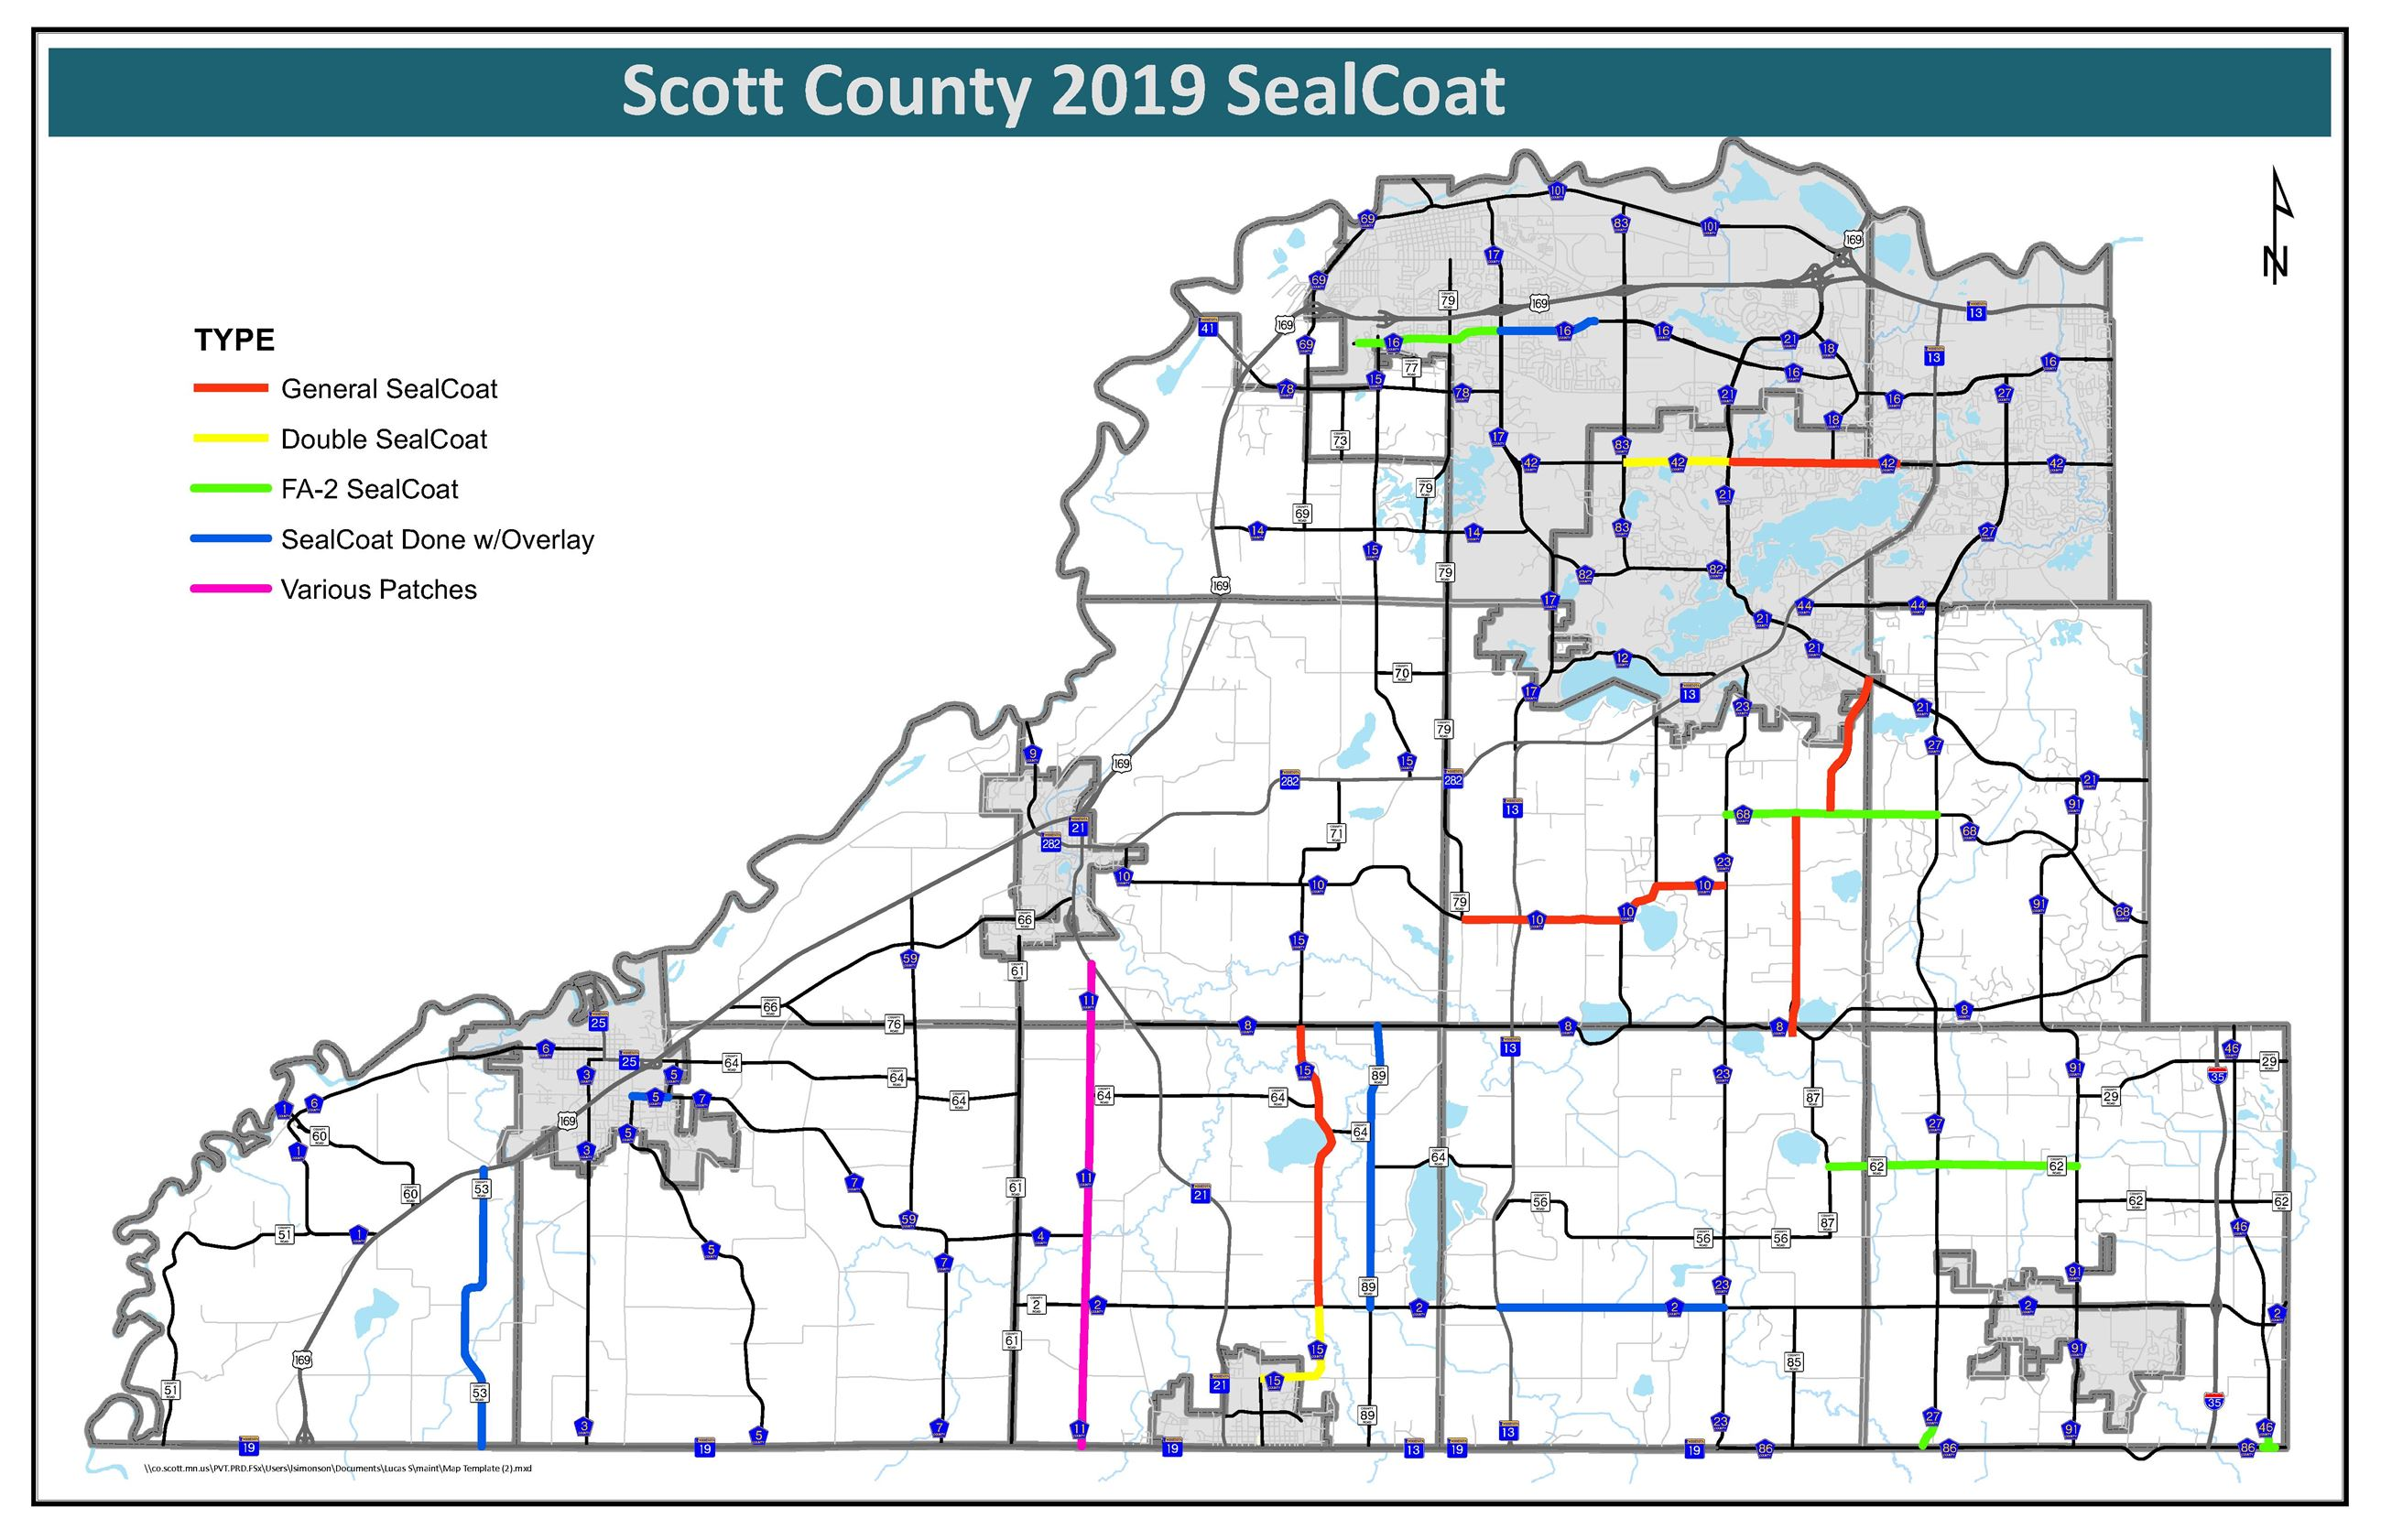 2019 SealCoat Map